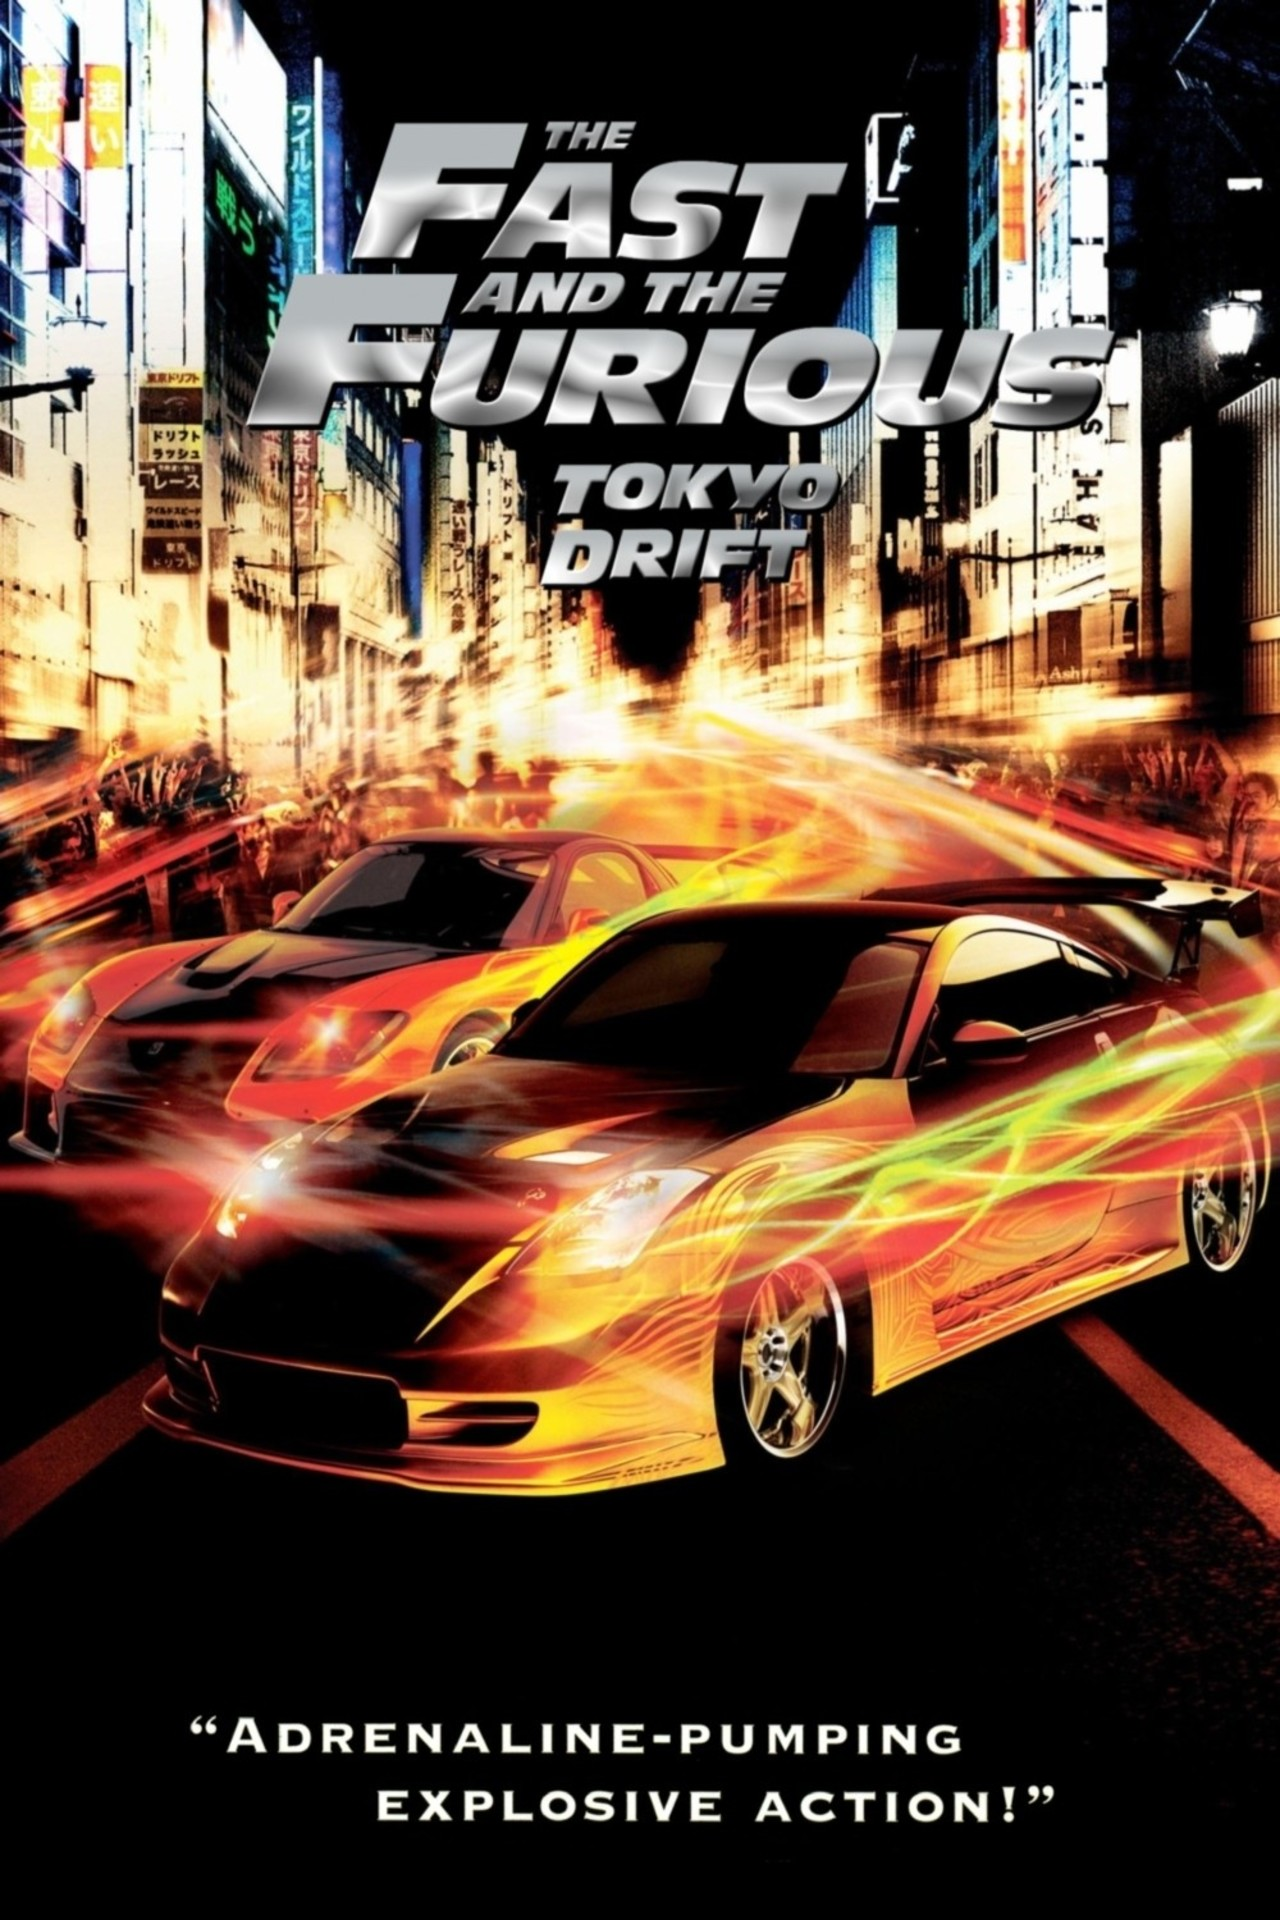 Poster for The Fast and the Furious: Tokyo Drift